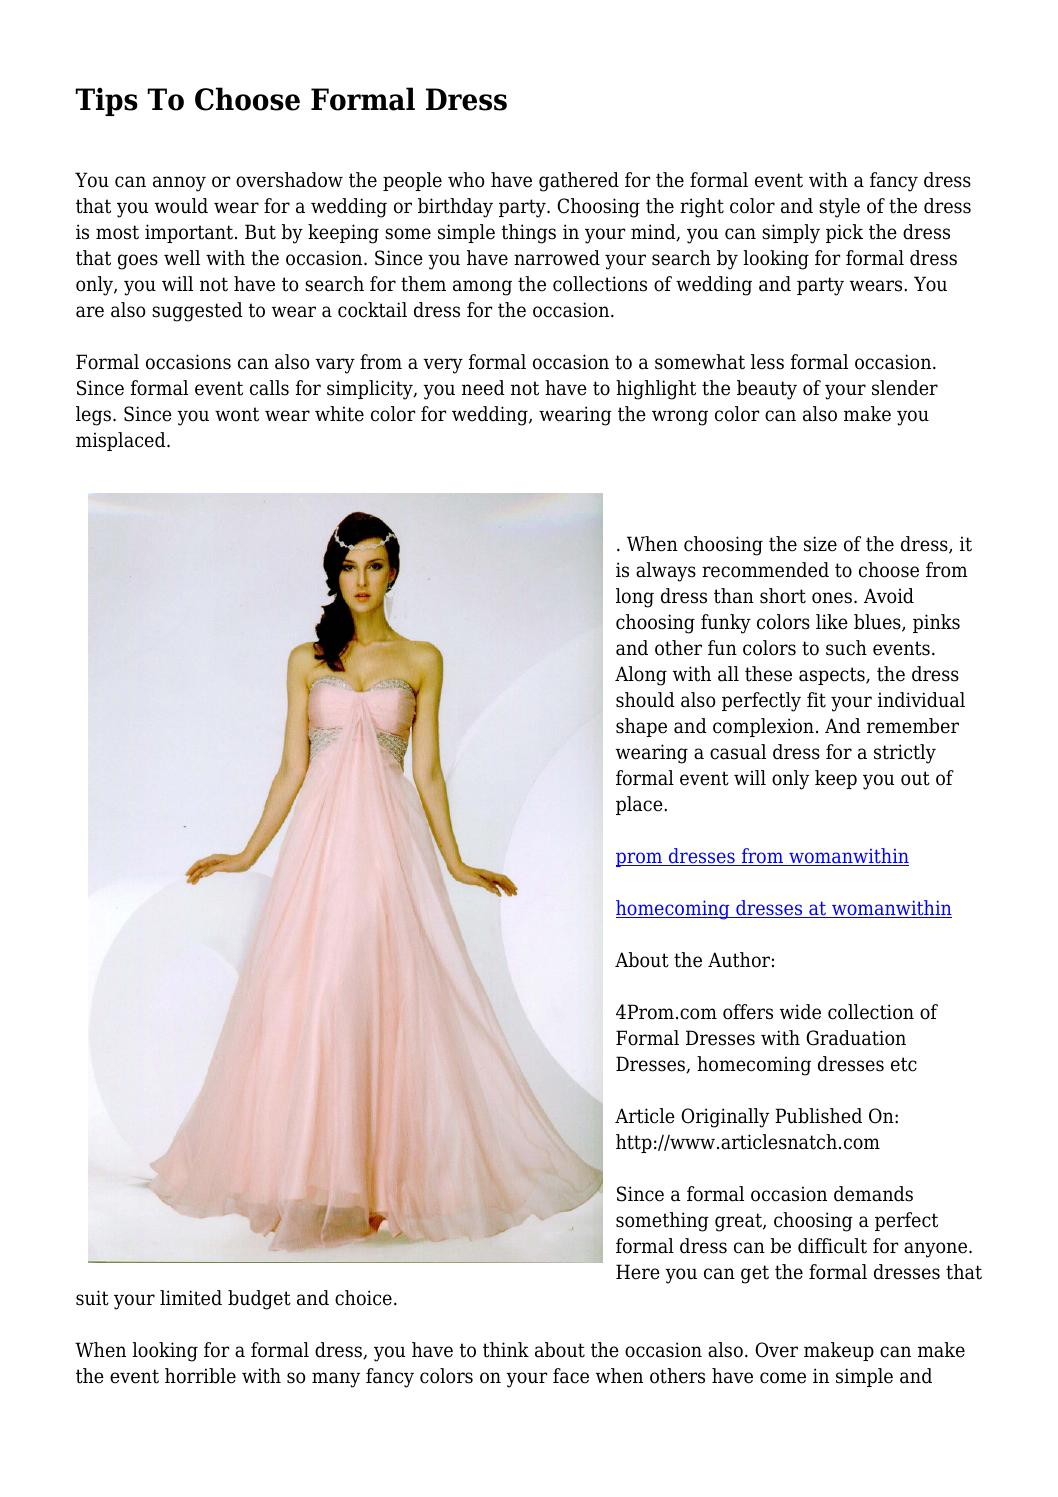 3a7e864eeb1 Tips To Choose Formal Dress by dampboss458 - issuu